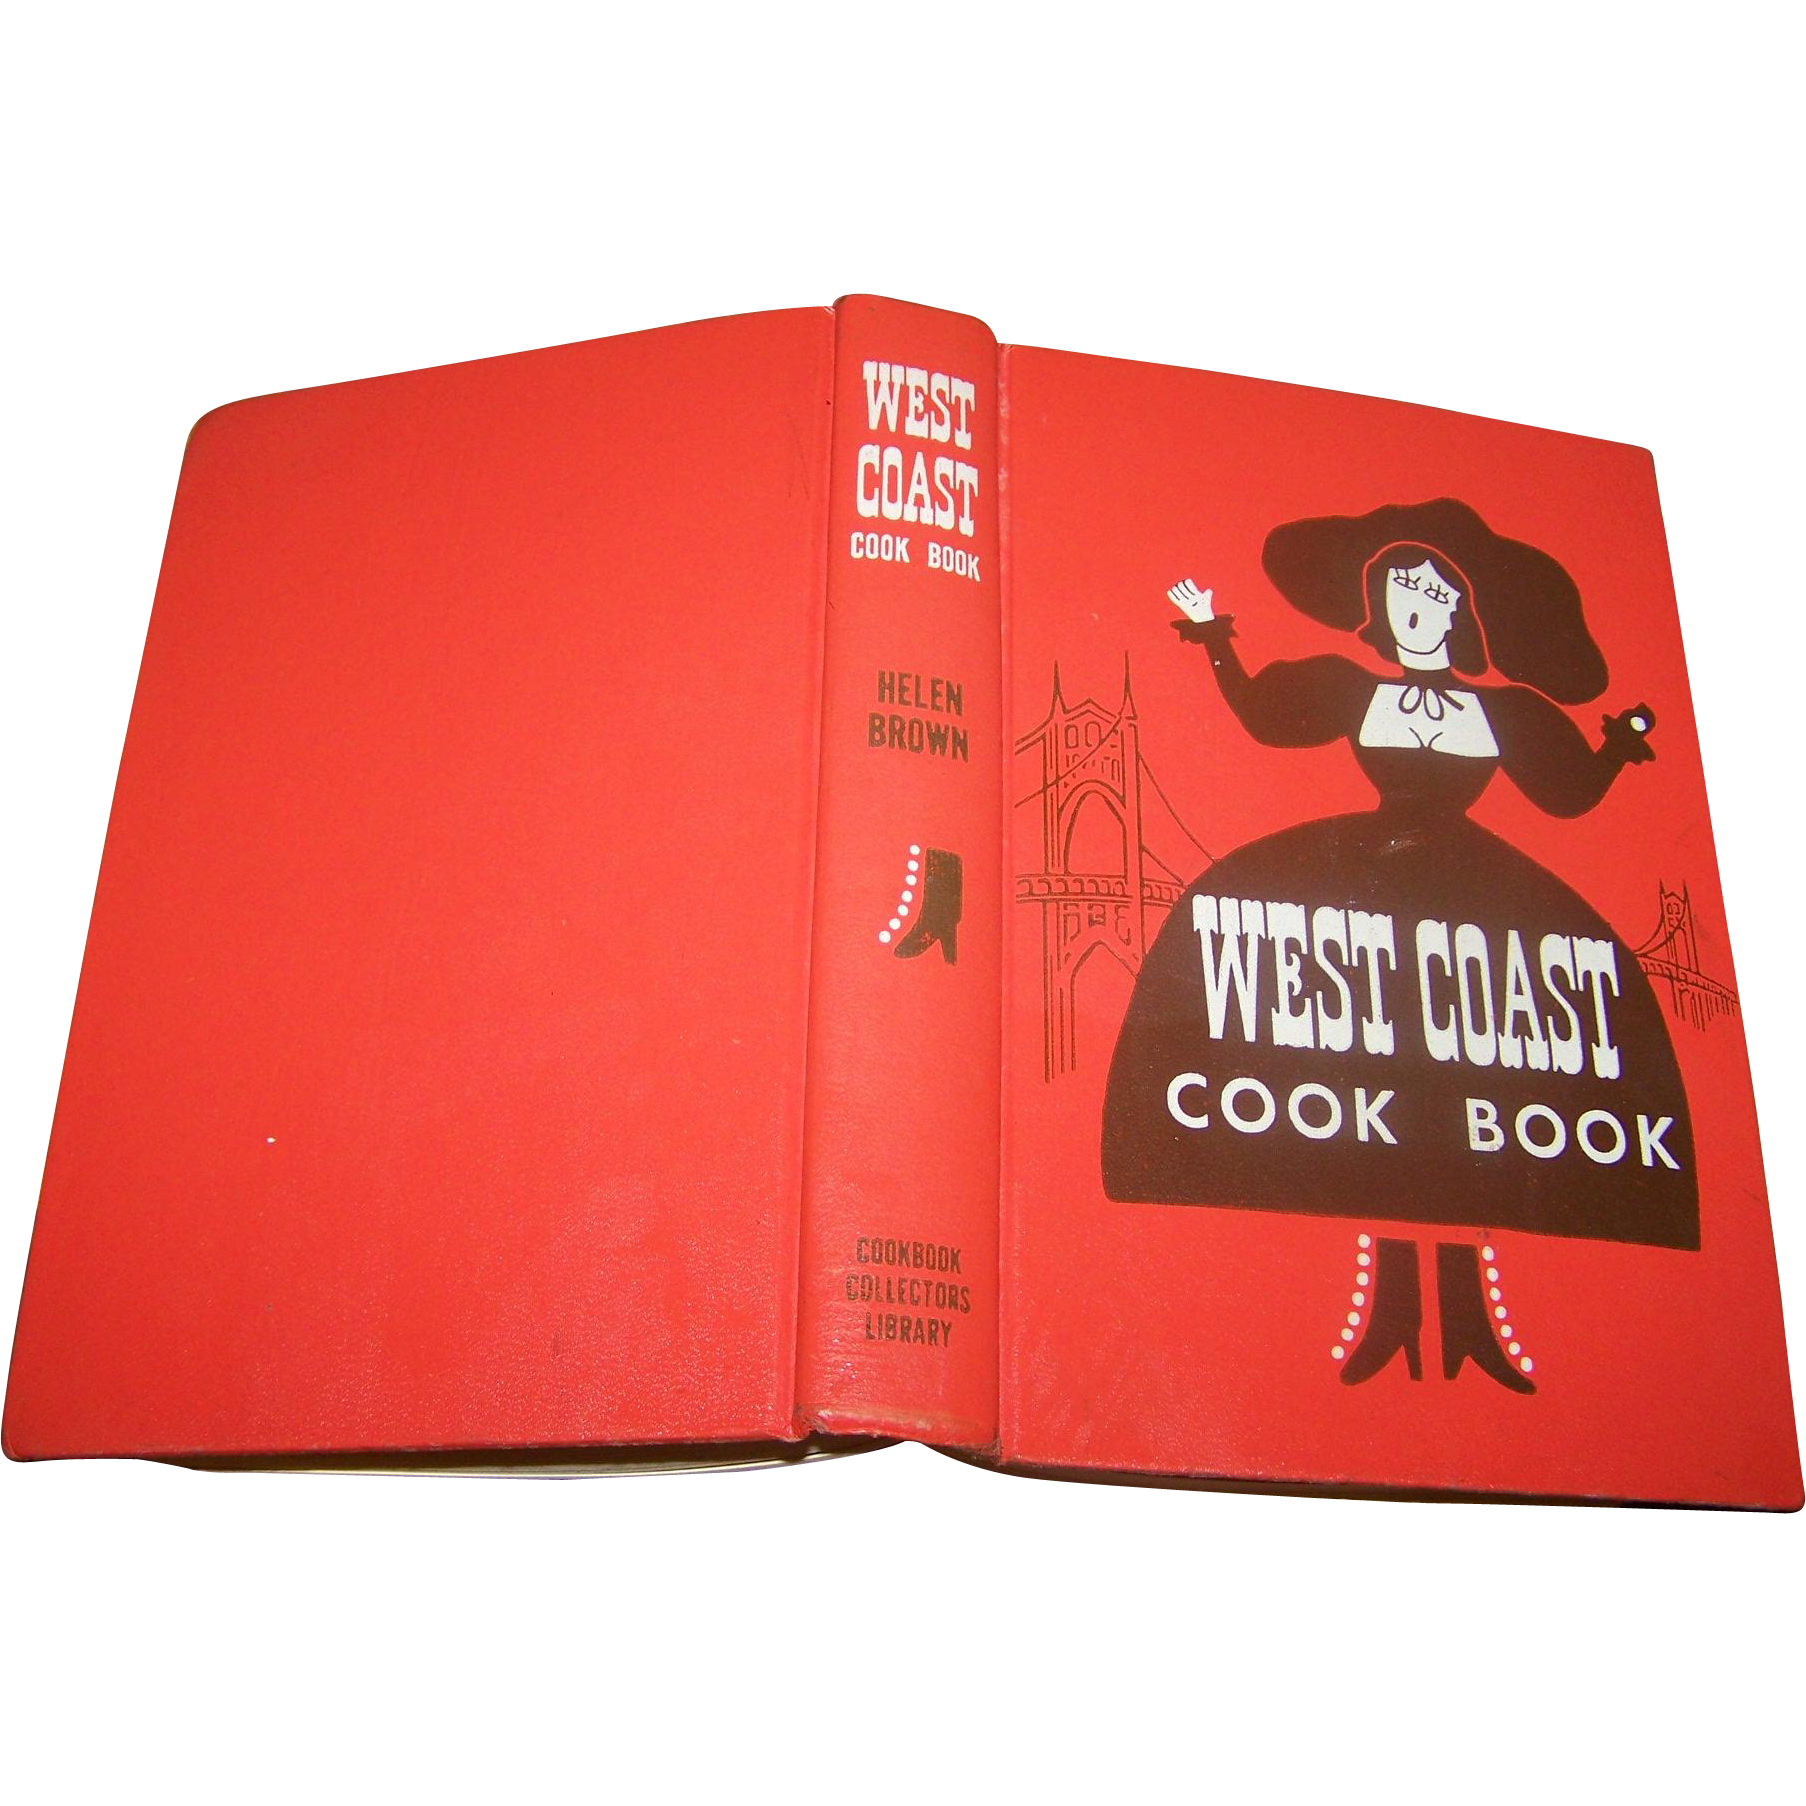 Helen Brown's The West Coast Cook Book A Reprint of the Original by The Cookbook Collectors Library